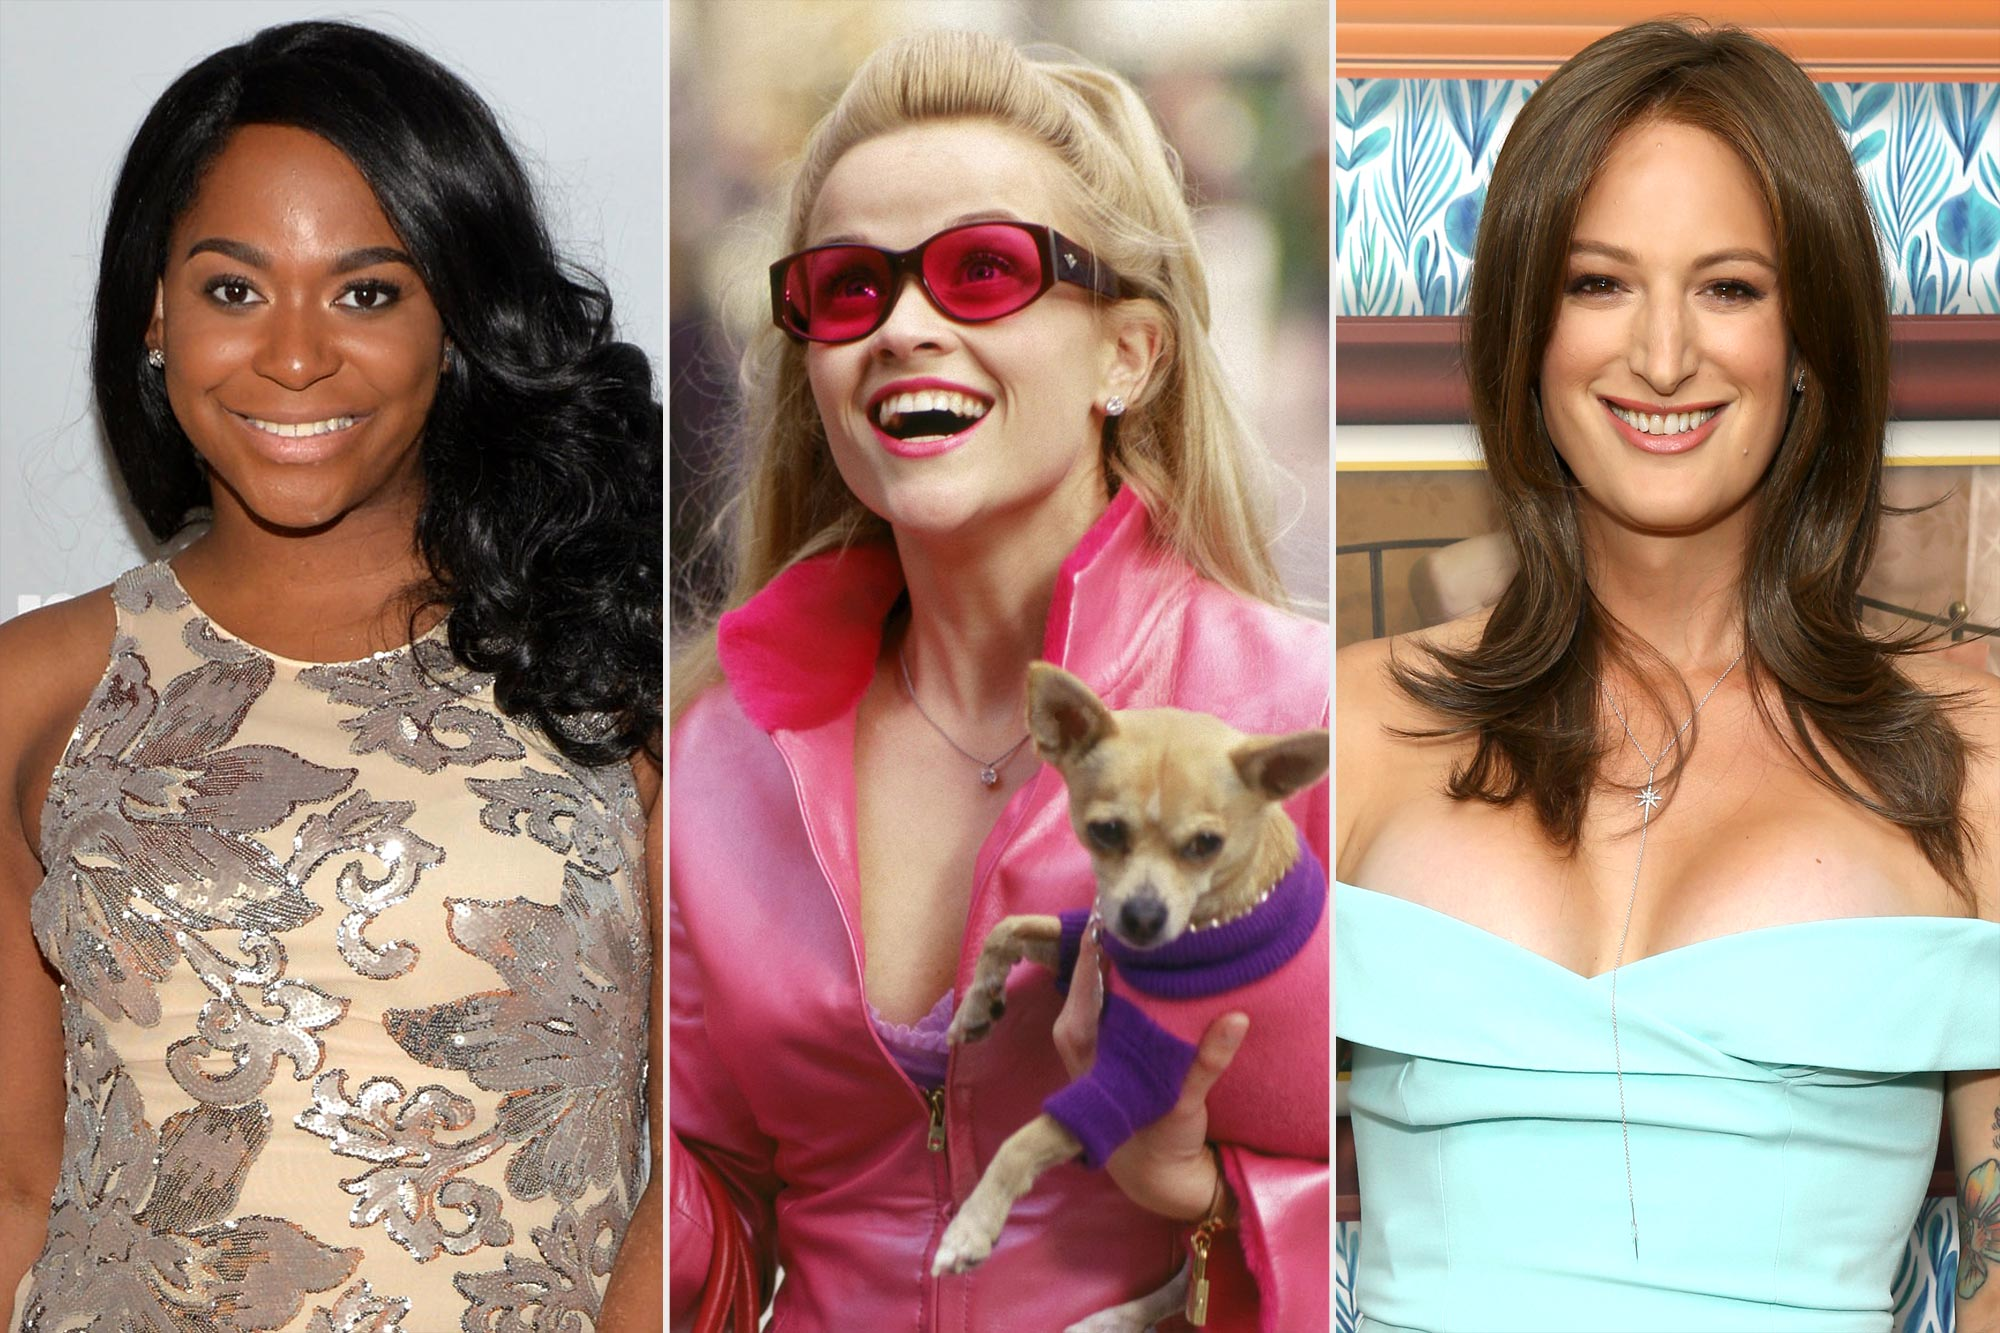 Alexandra Gray, Reese Witherspoon in Legally Blonde, and Jen Richards